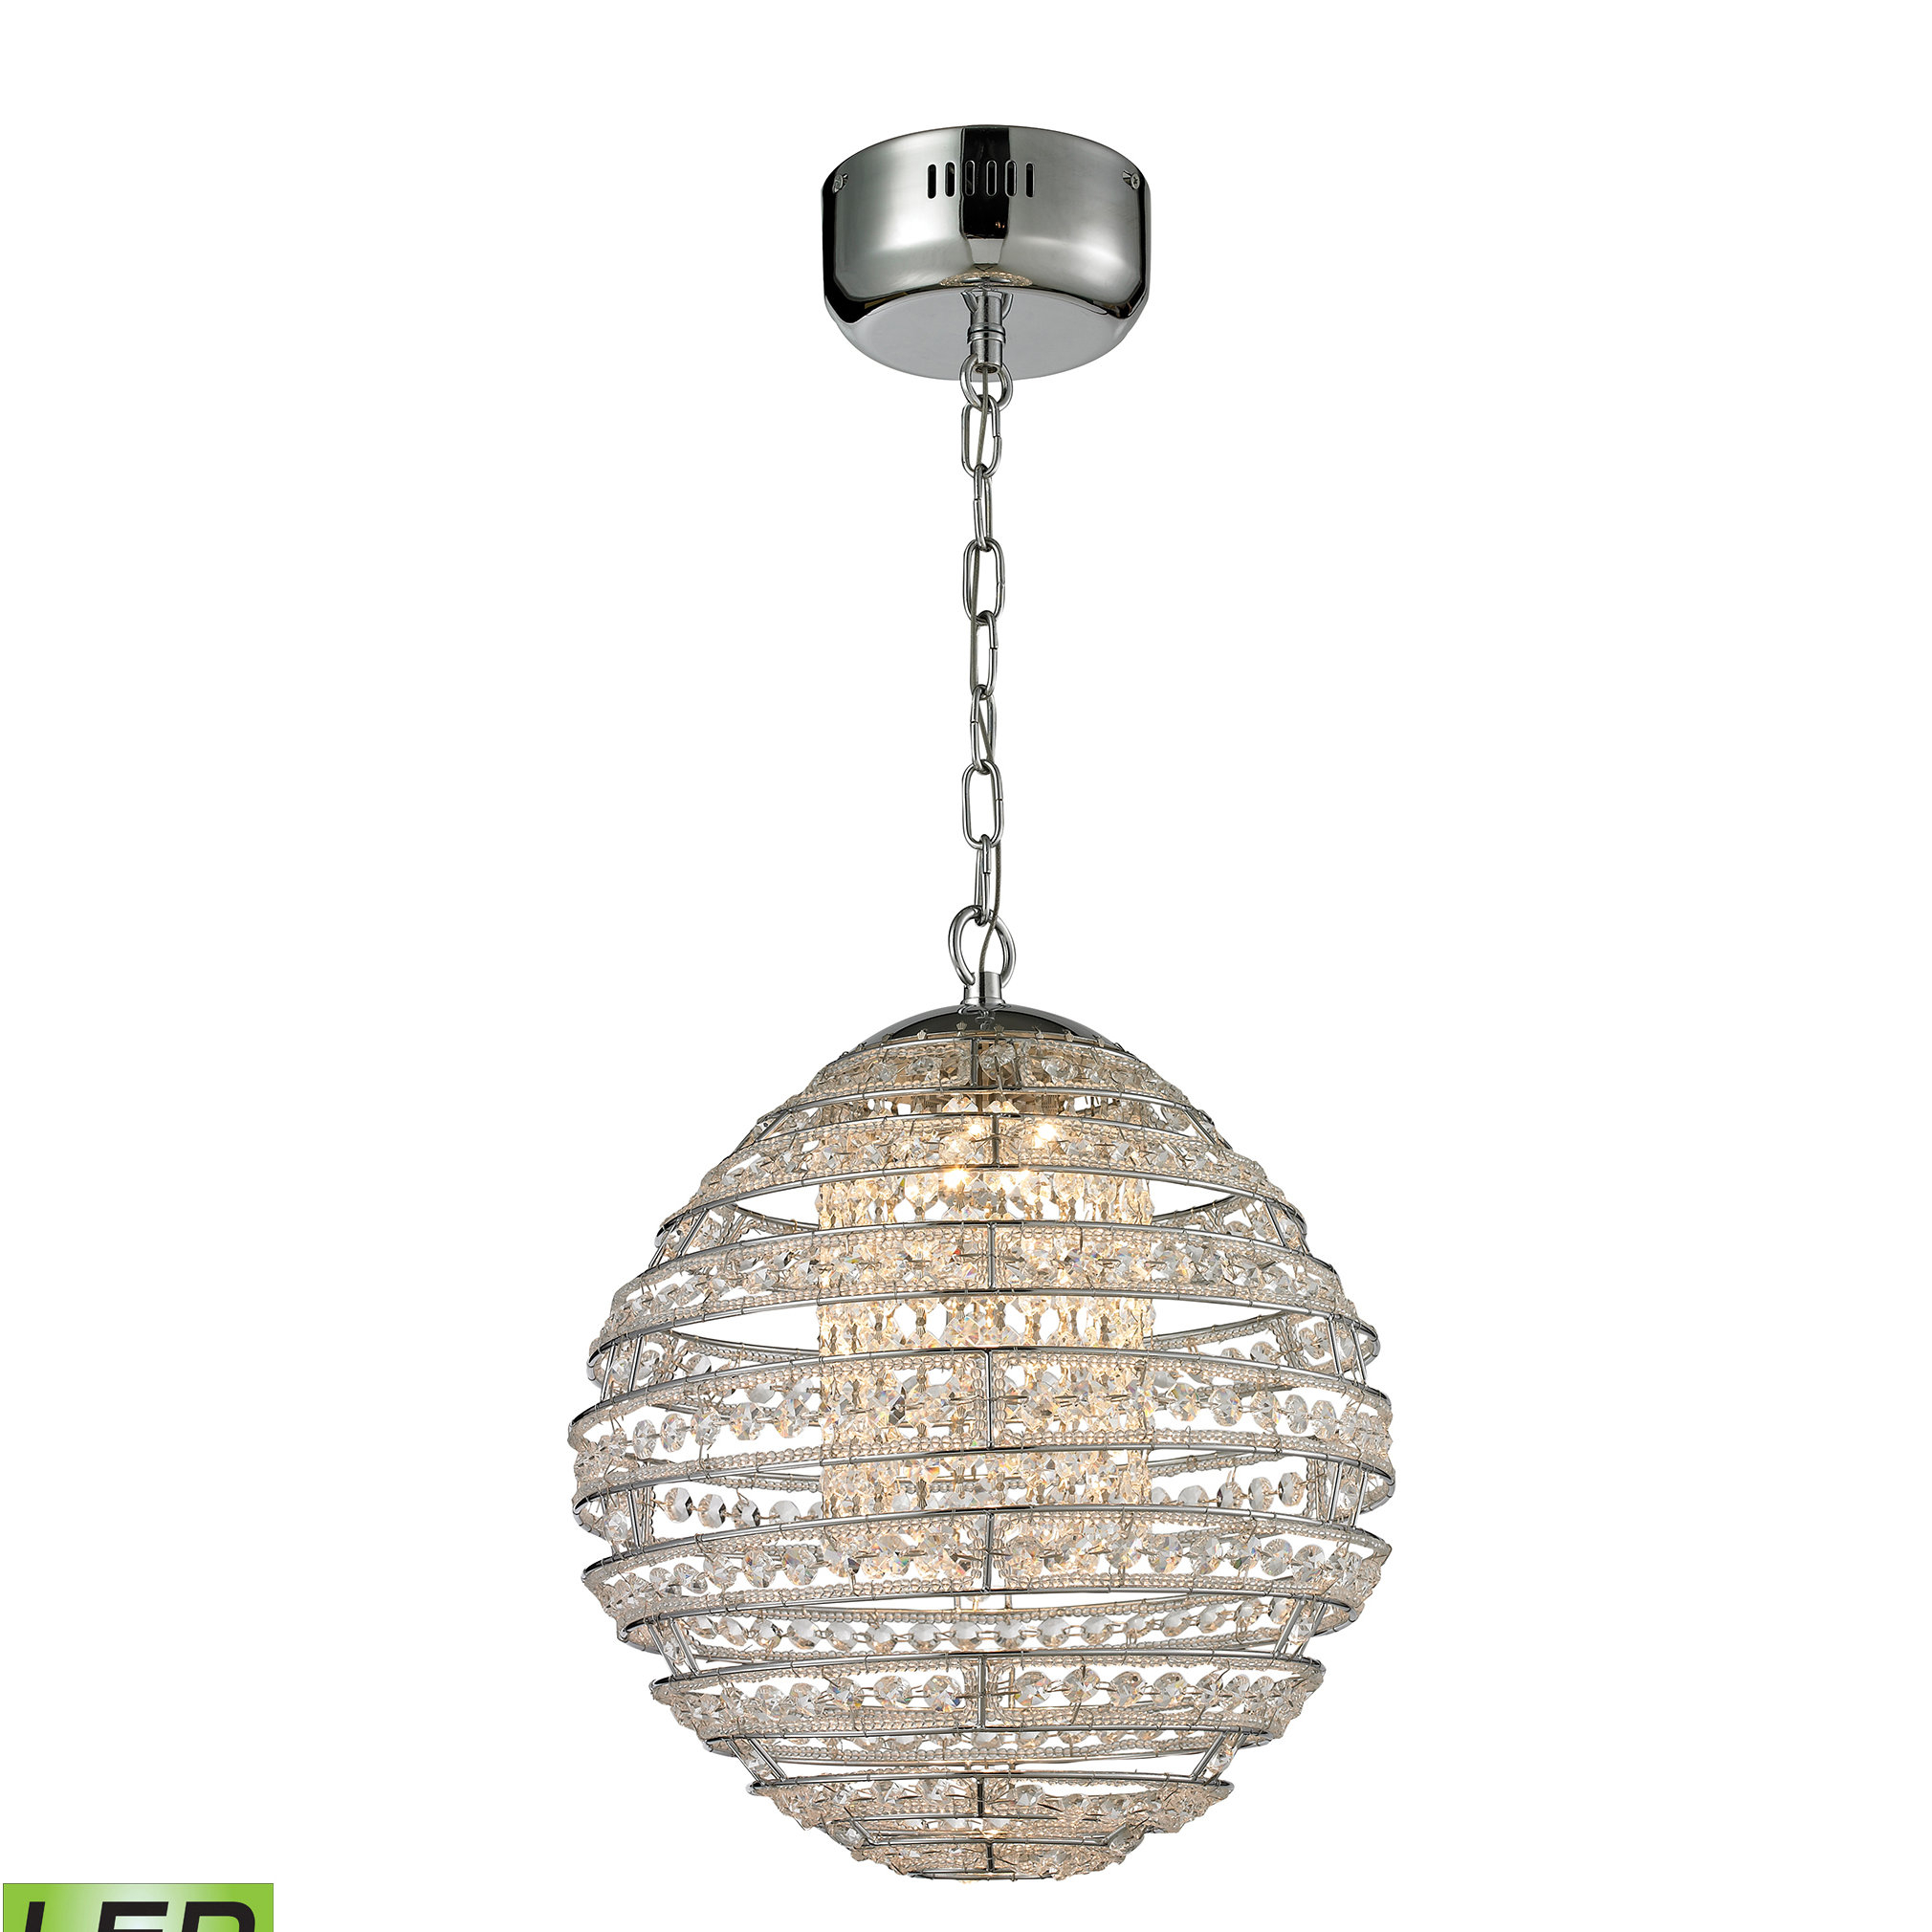 Tussey 1-Light Led Single Globe Pendant within Spokane 1-Light Single Urn Pendants (Image 30 of 30)